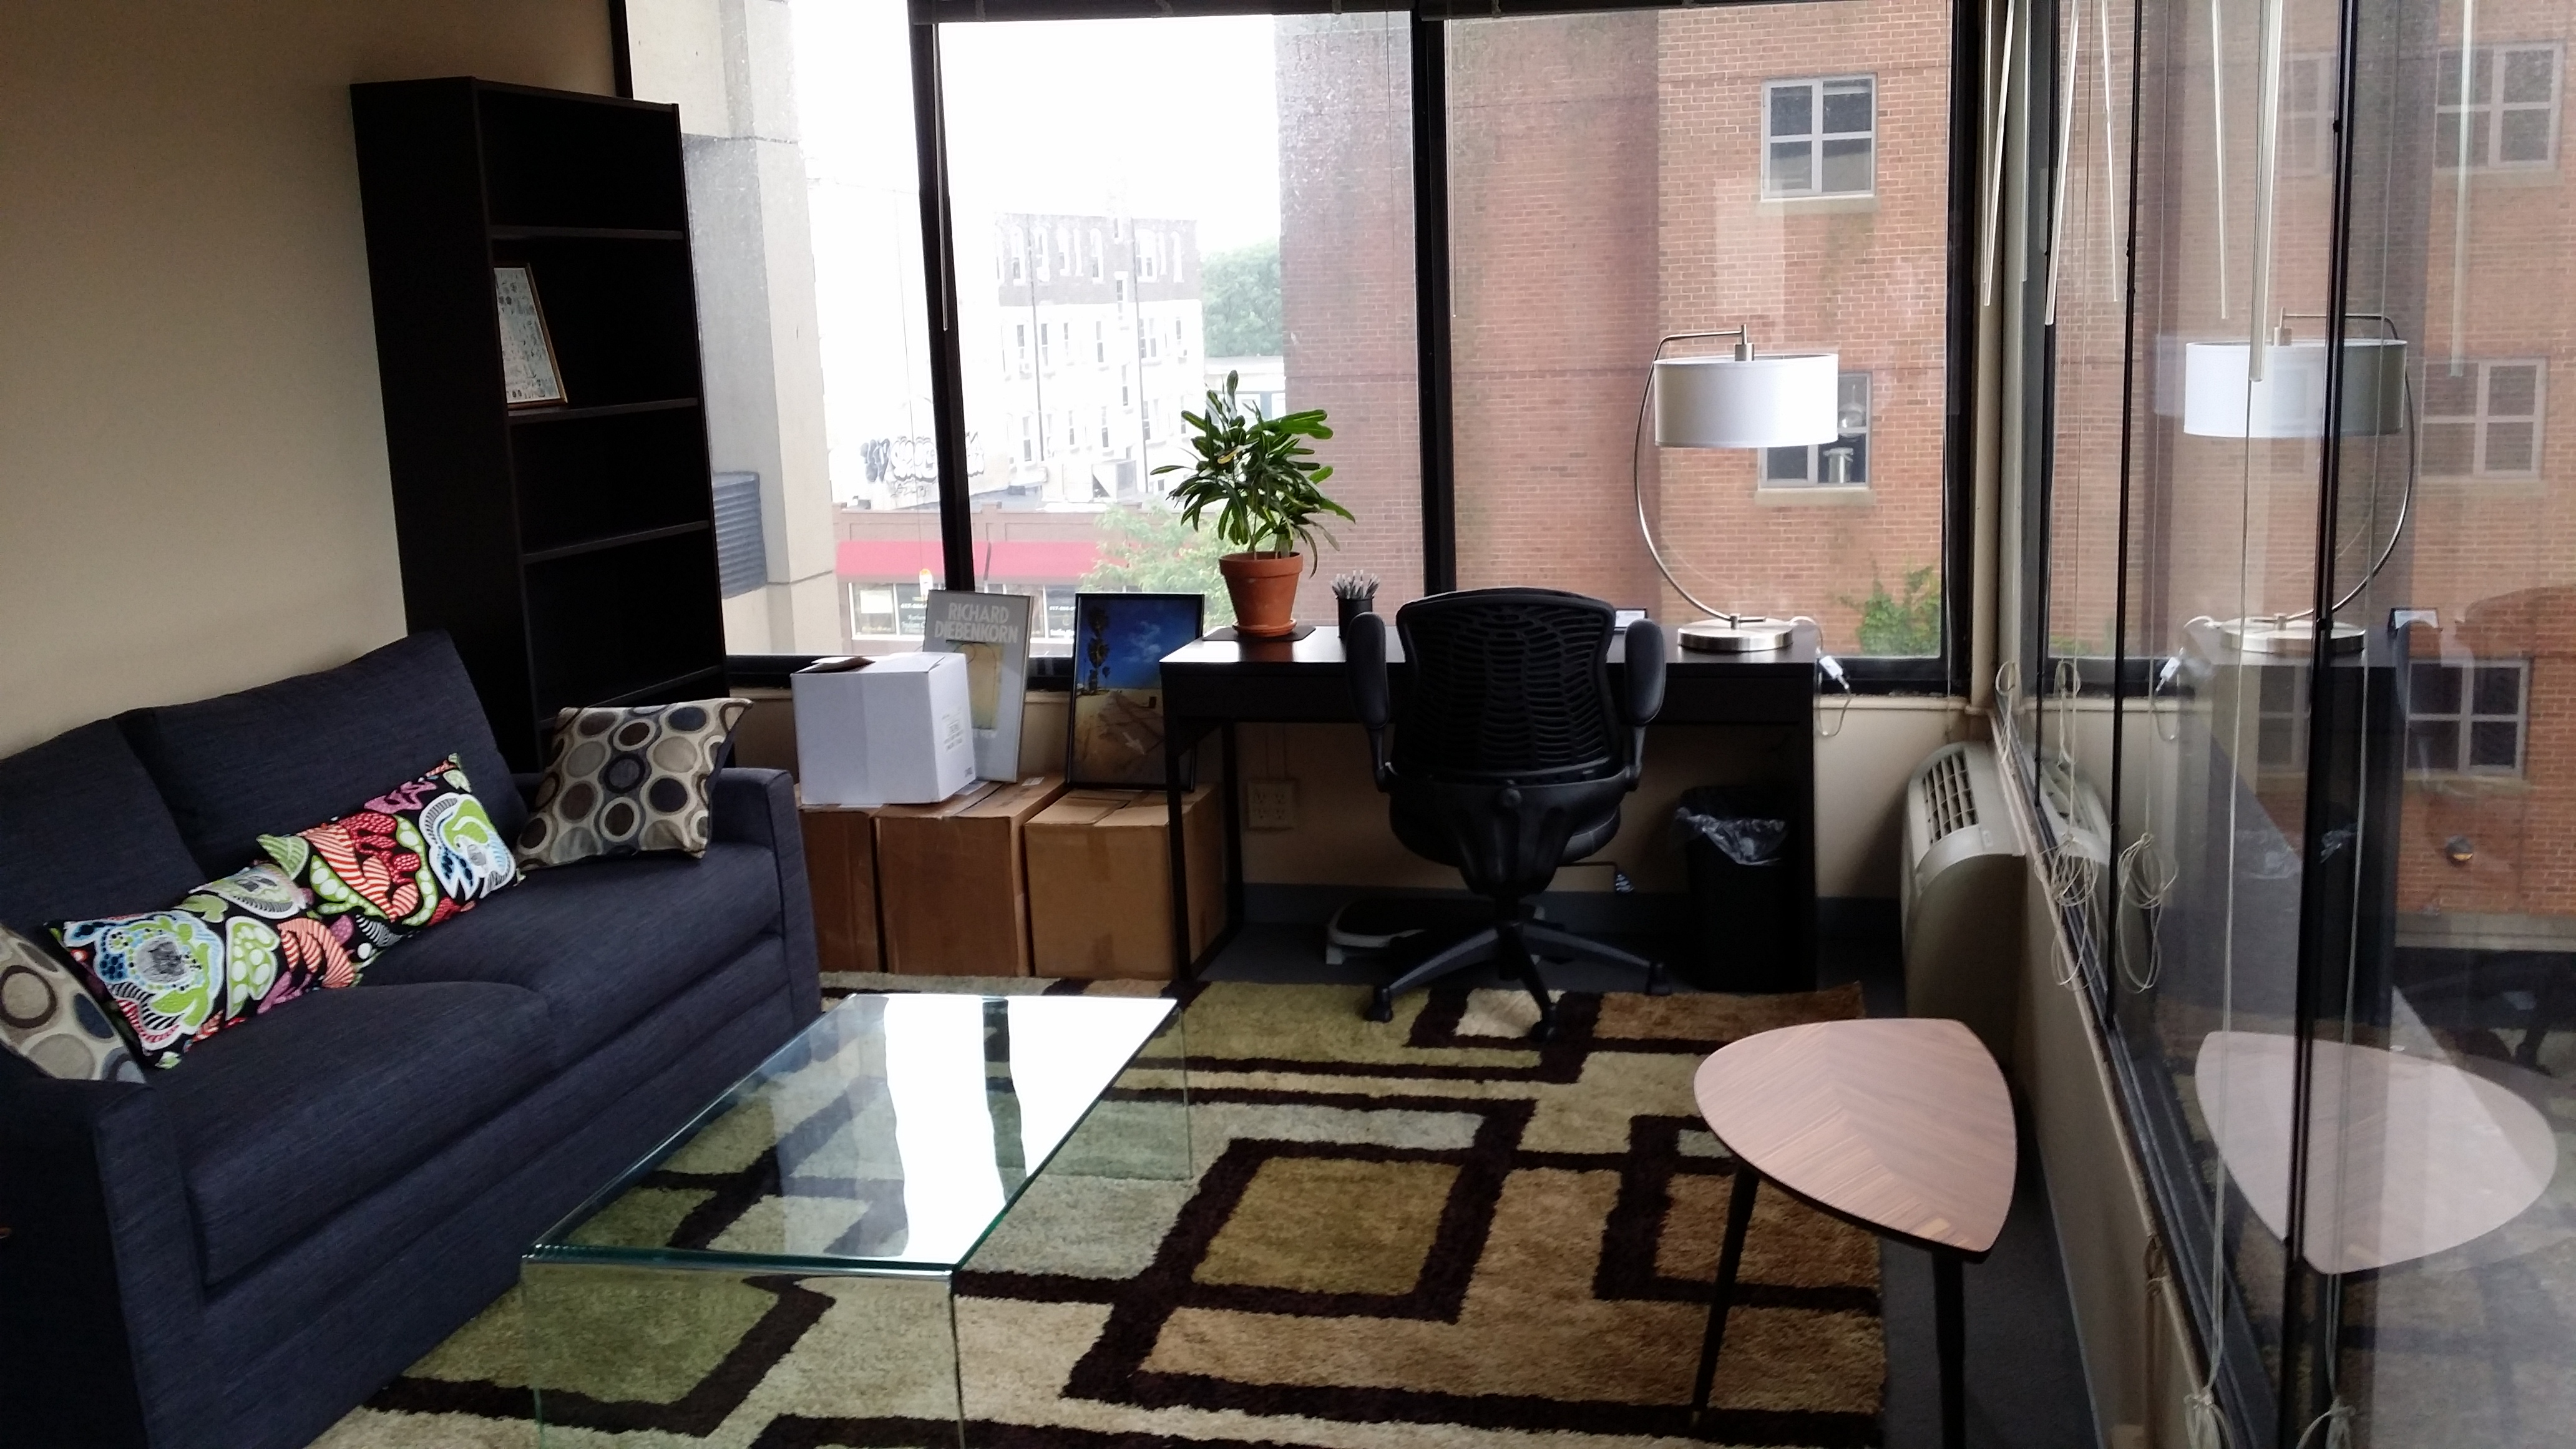 Cambridge Counseling Offices - Thriveworks